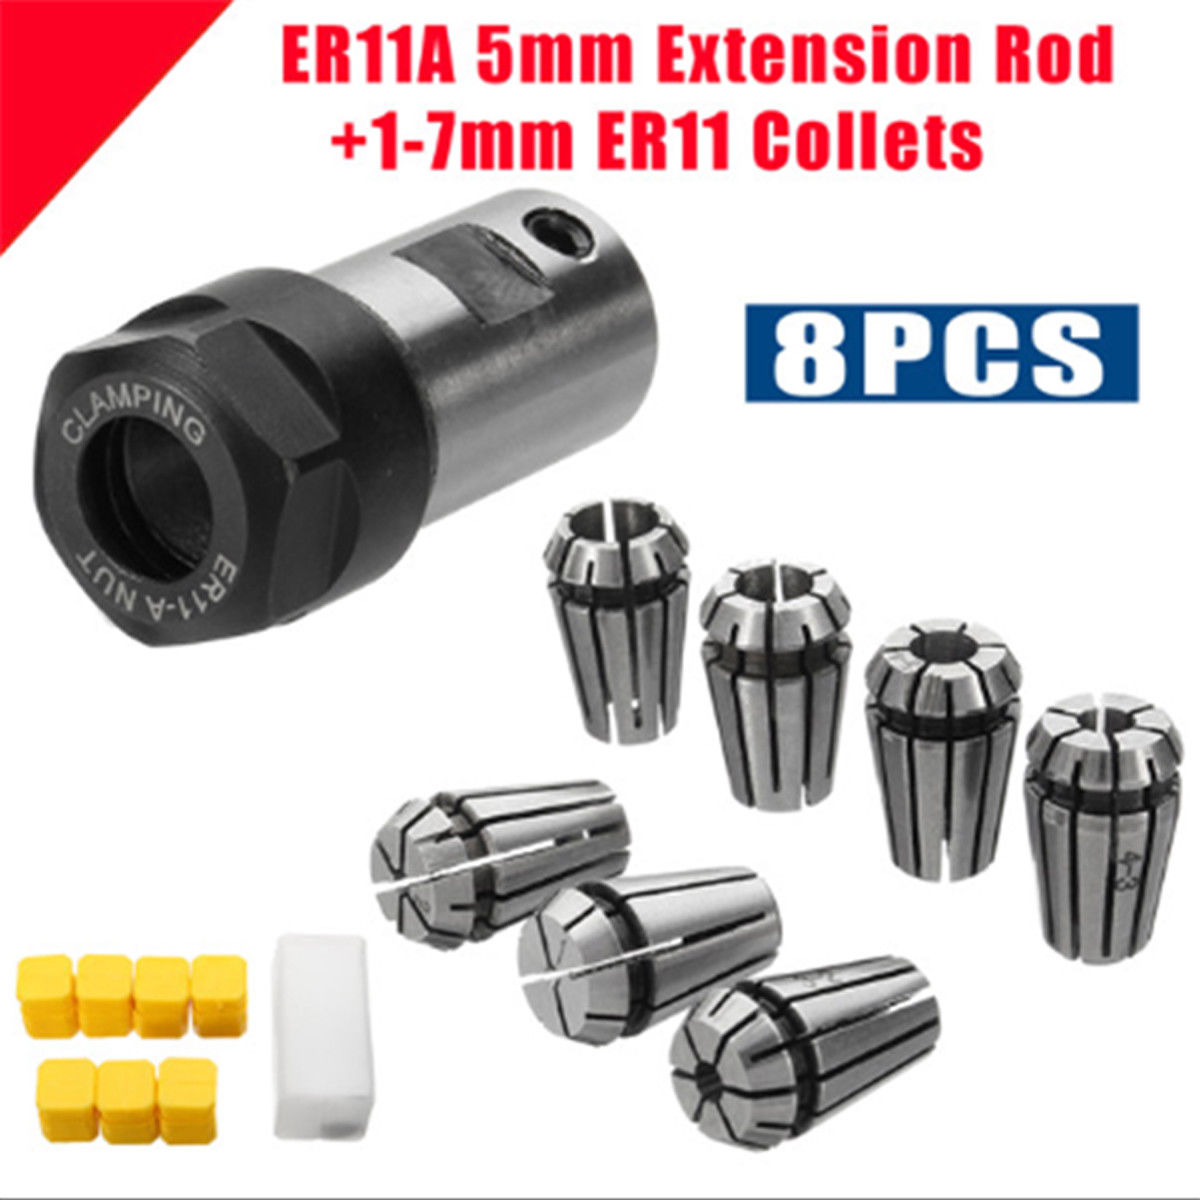 7Pcs Carbon <font><b>steel</b></font> ER11 1/2/3/4/5/6/<font><b>7mm</b></font> Spring Collets with ER11A 5mm Motor Shaft Holder CNC Machine Extension <font><b>Rod</b></font> Collet Chuck image